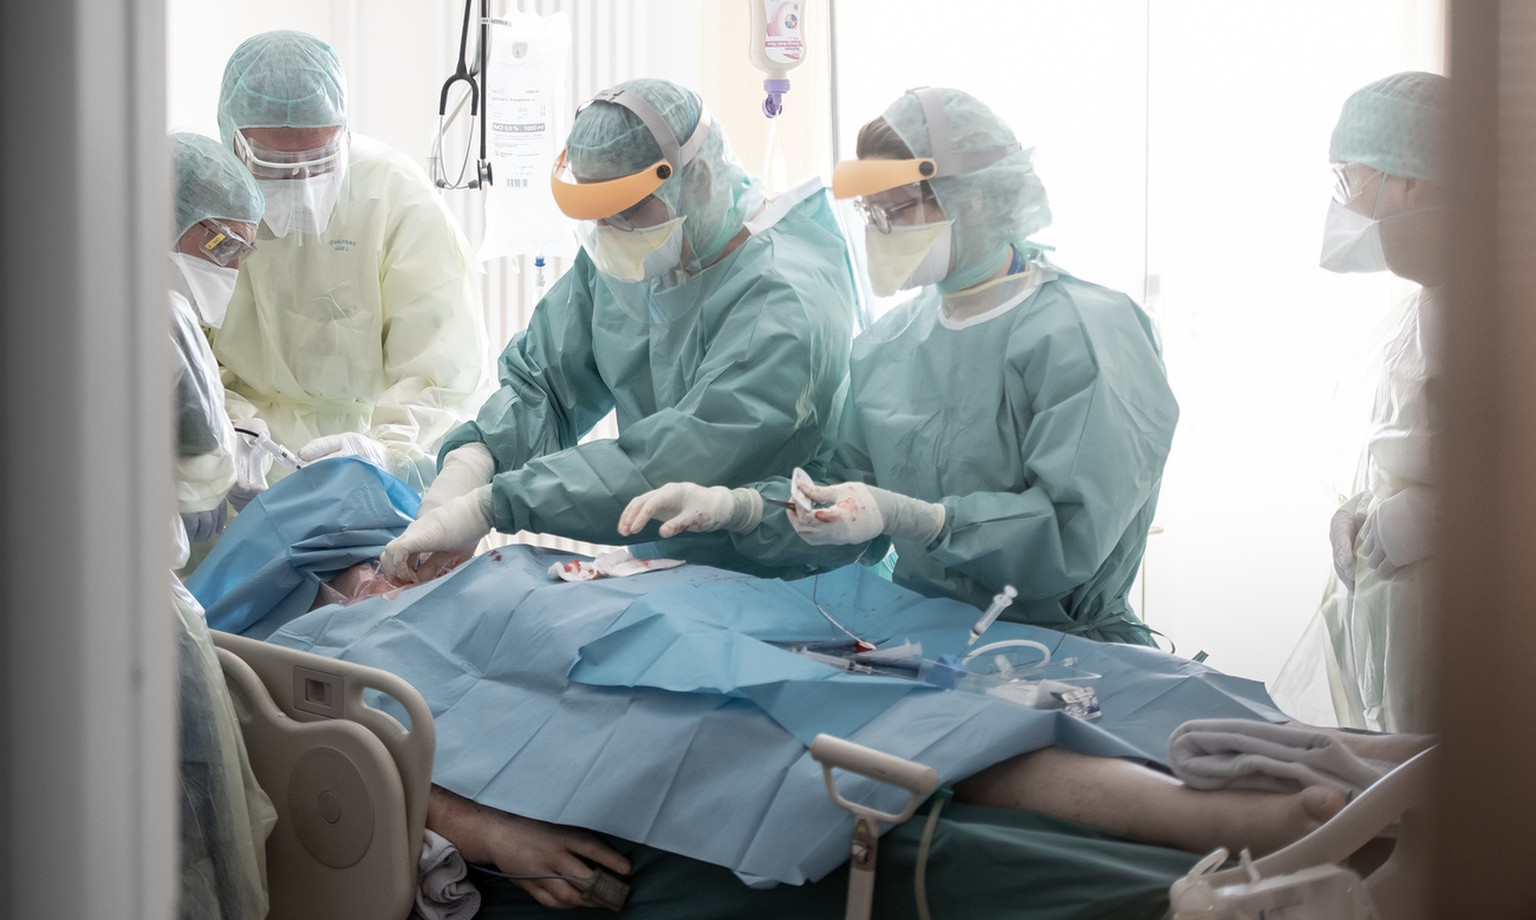 Doctors are executing a tracheotomy to a patient in Intensive Care in the pediatrics department at the regional hospital La Carita in Locarno, Switzerland, April 2, 2020. (KEYSTONE/Ti-Press/Pablo Gianinazzi)